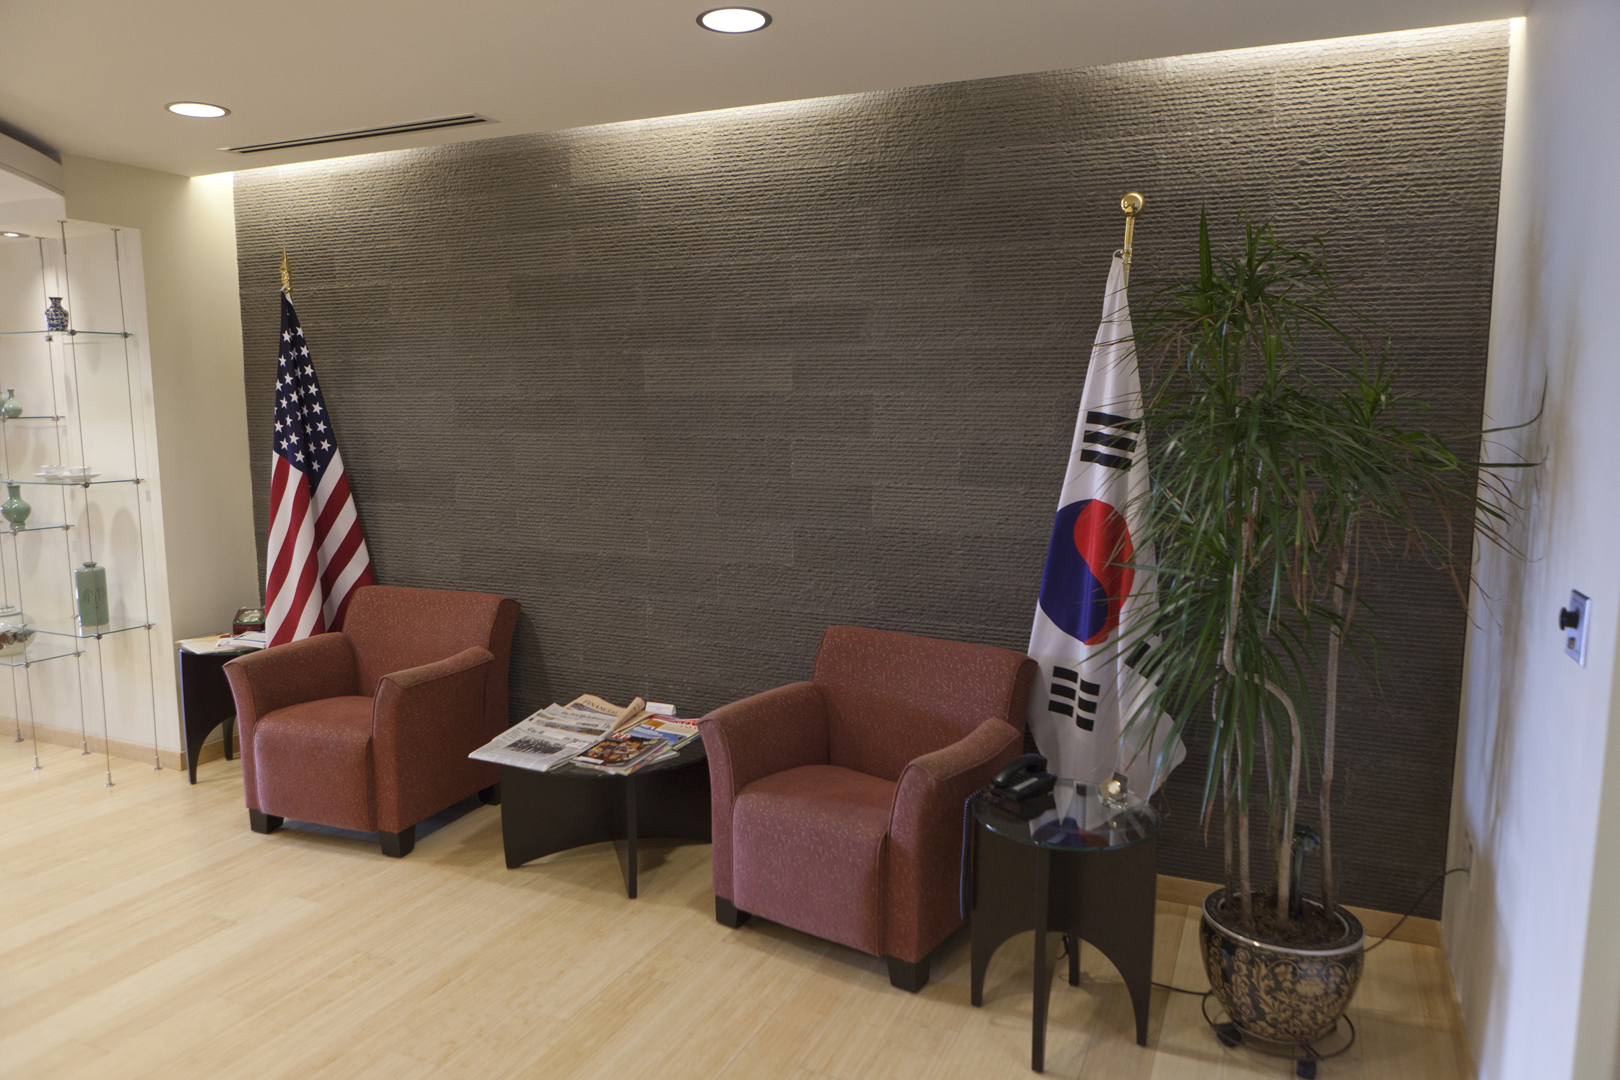 Korea Economic Institute, D.C.